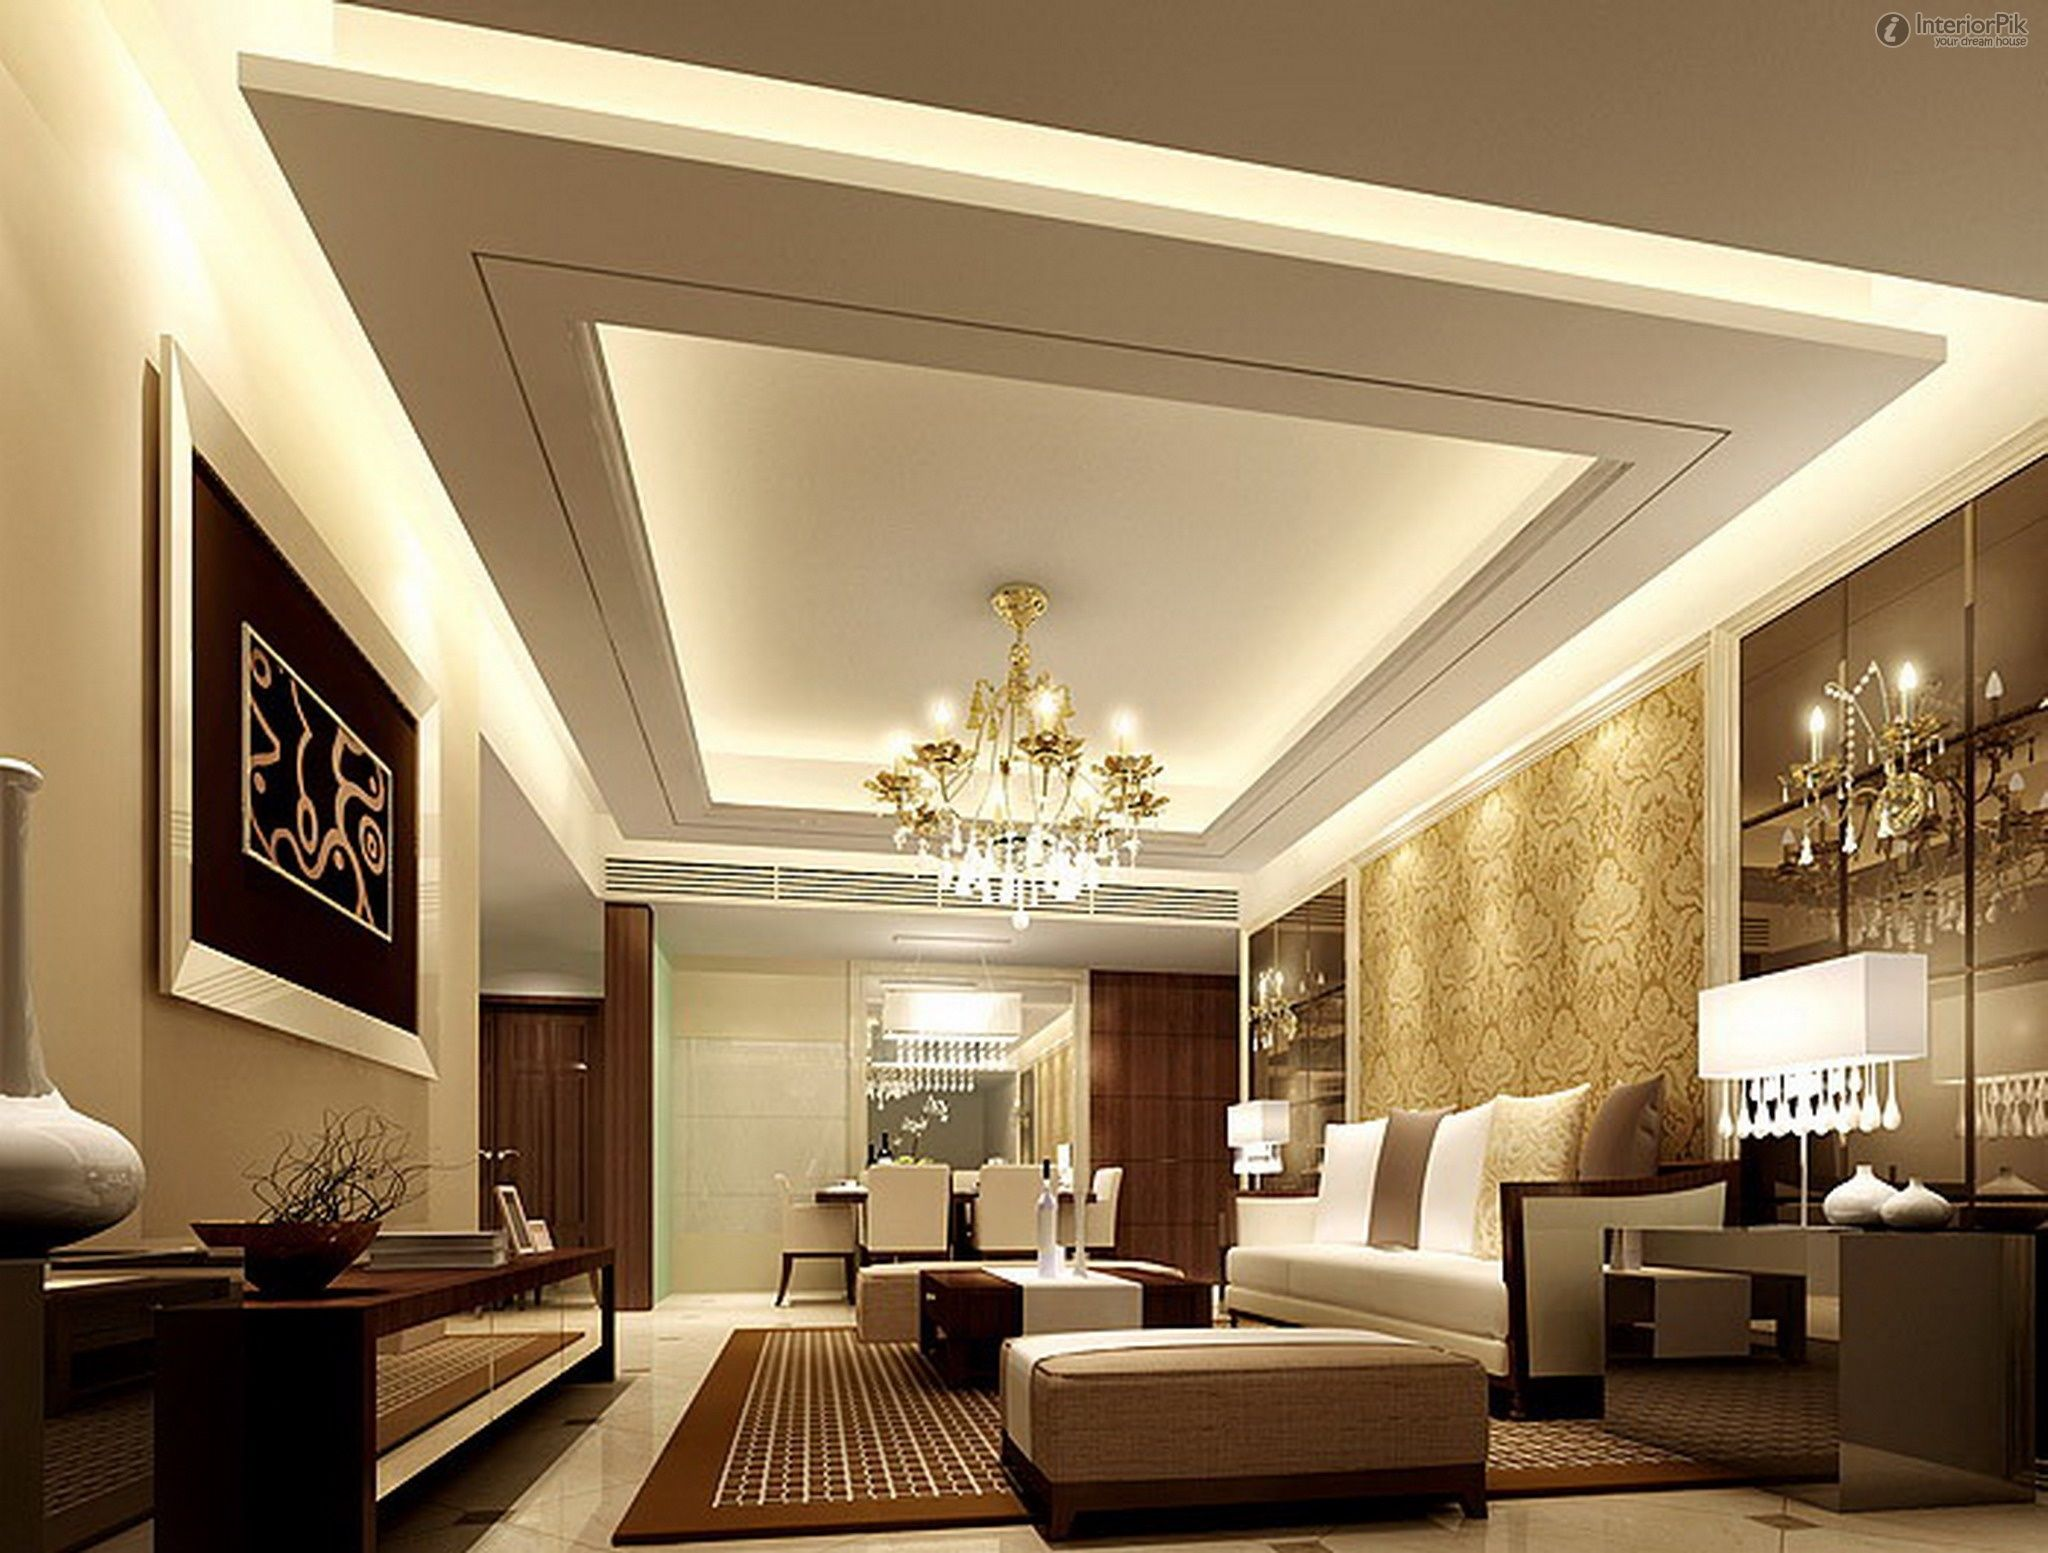 creative living room ceiling designs ideas | Ceiling Designs for Your Living Room | Ceiling design ...